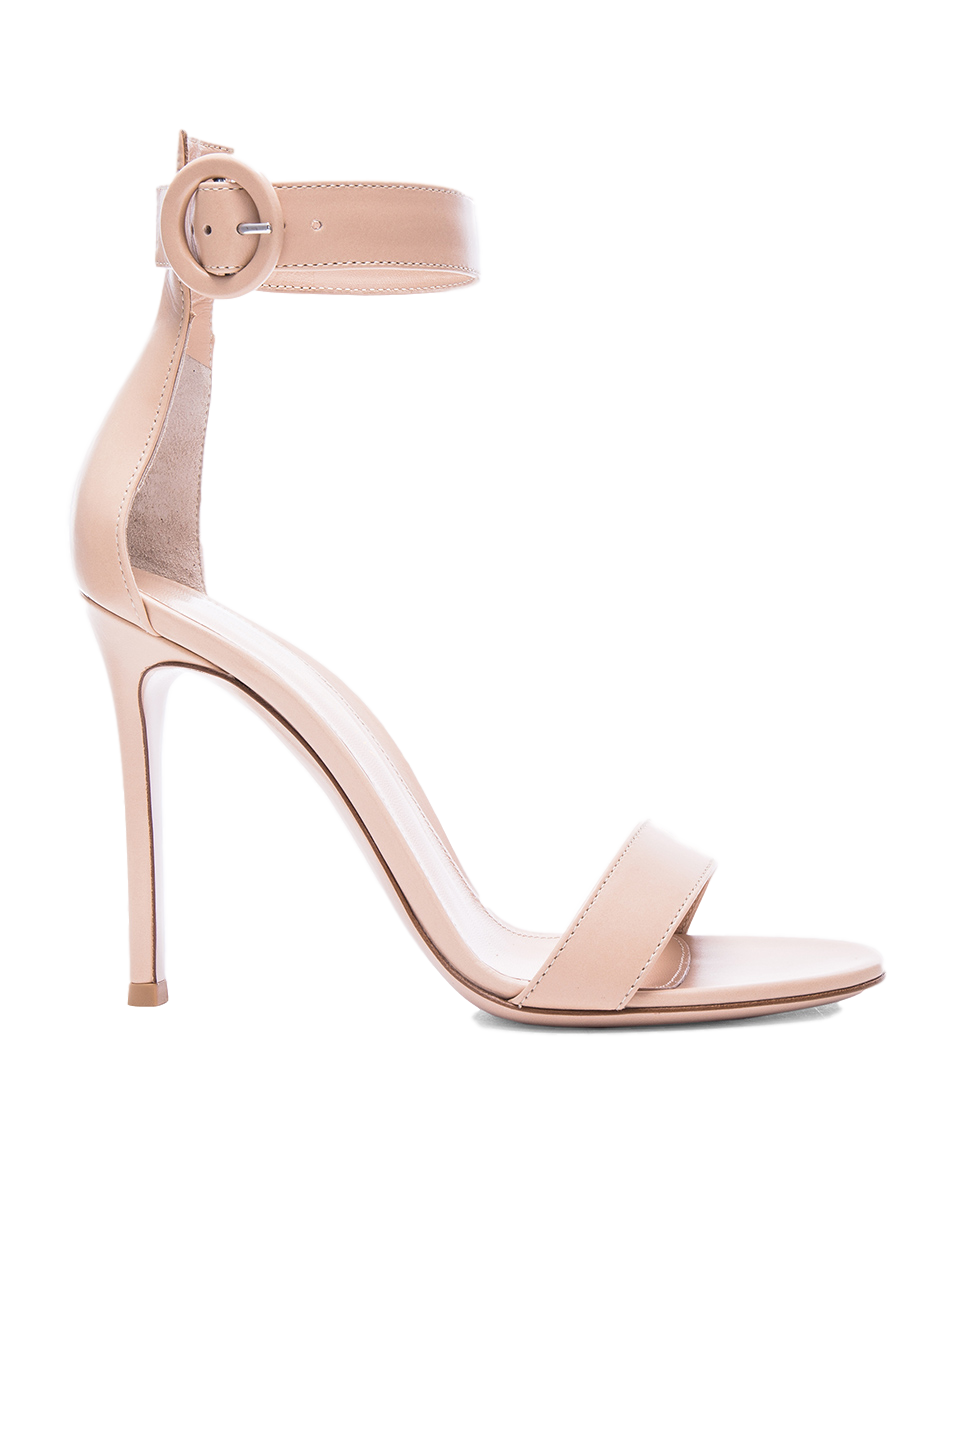 http-__www.fwrd.com_product-leather-portofino-heels_GIAN-WZ144__d=Womens&itrownum=66&itcurrpage=1&itview=05_clipped_rev_1.png